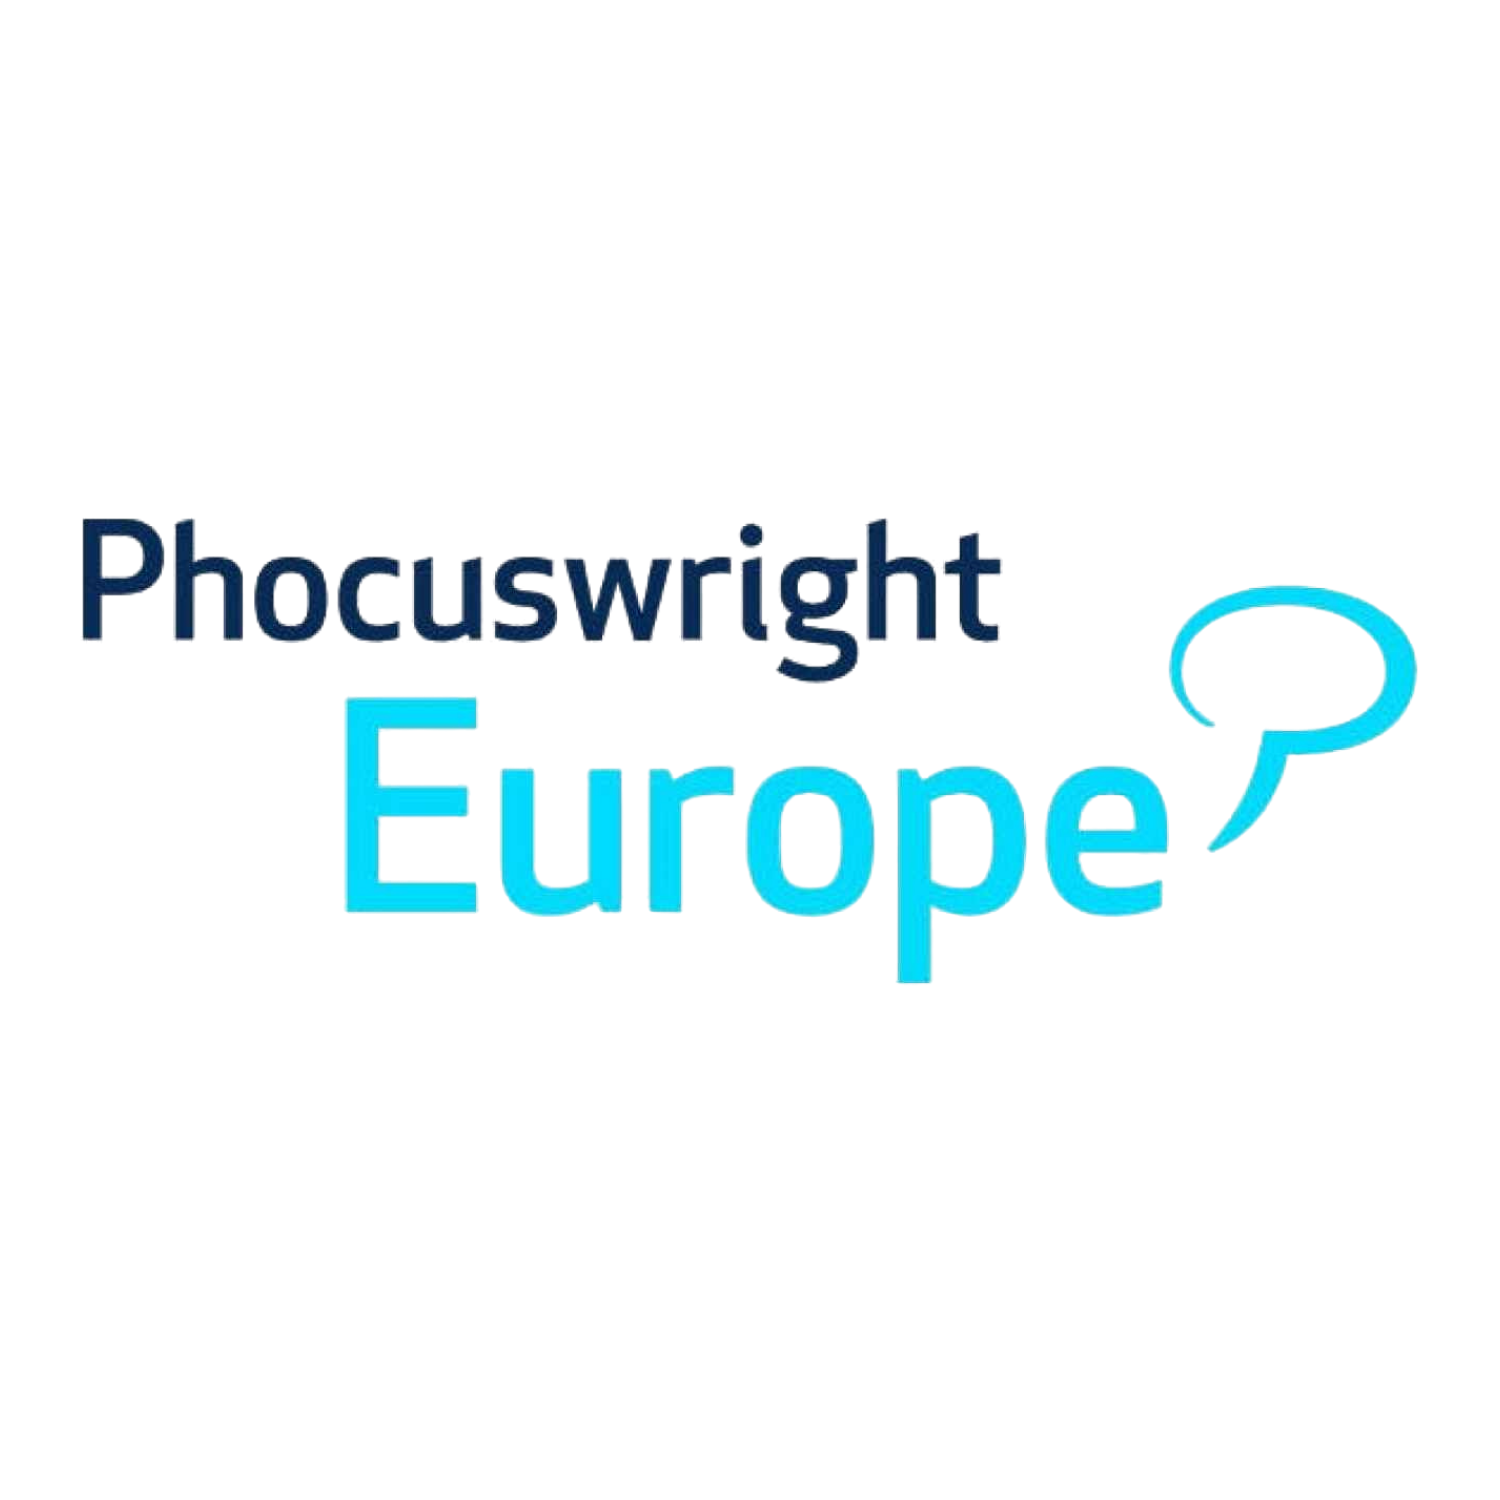 From leveraging machine learning to the ongoing push for innovation in the travel space - here are the top things we learned at Phocuswright Europe 2019.